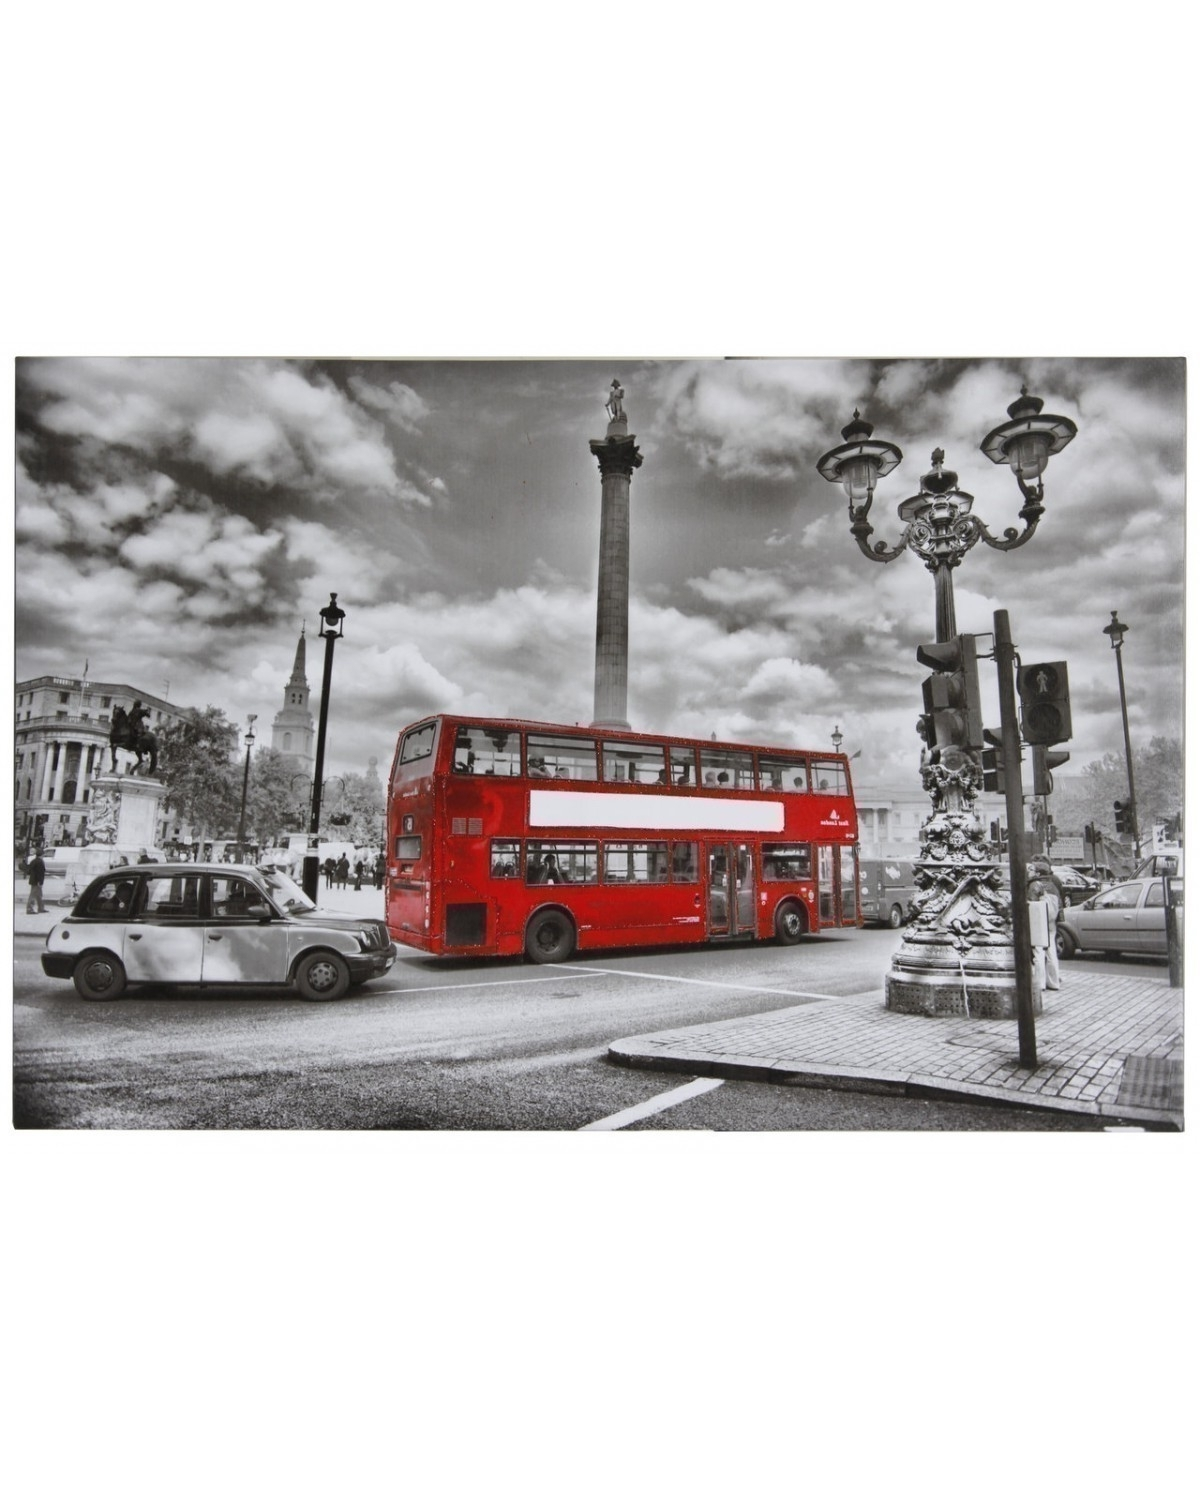 Glitter London City Scene Ii Canvas Wall Art 90 X 60Cm With Regard To Most Recently Released London Scene Wall Art (View 4 of 15)